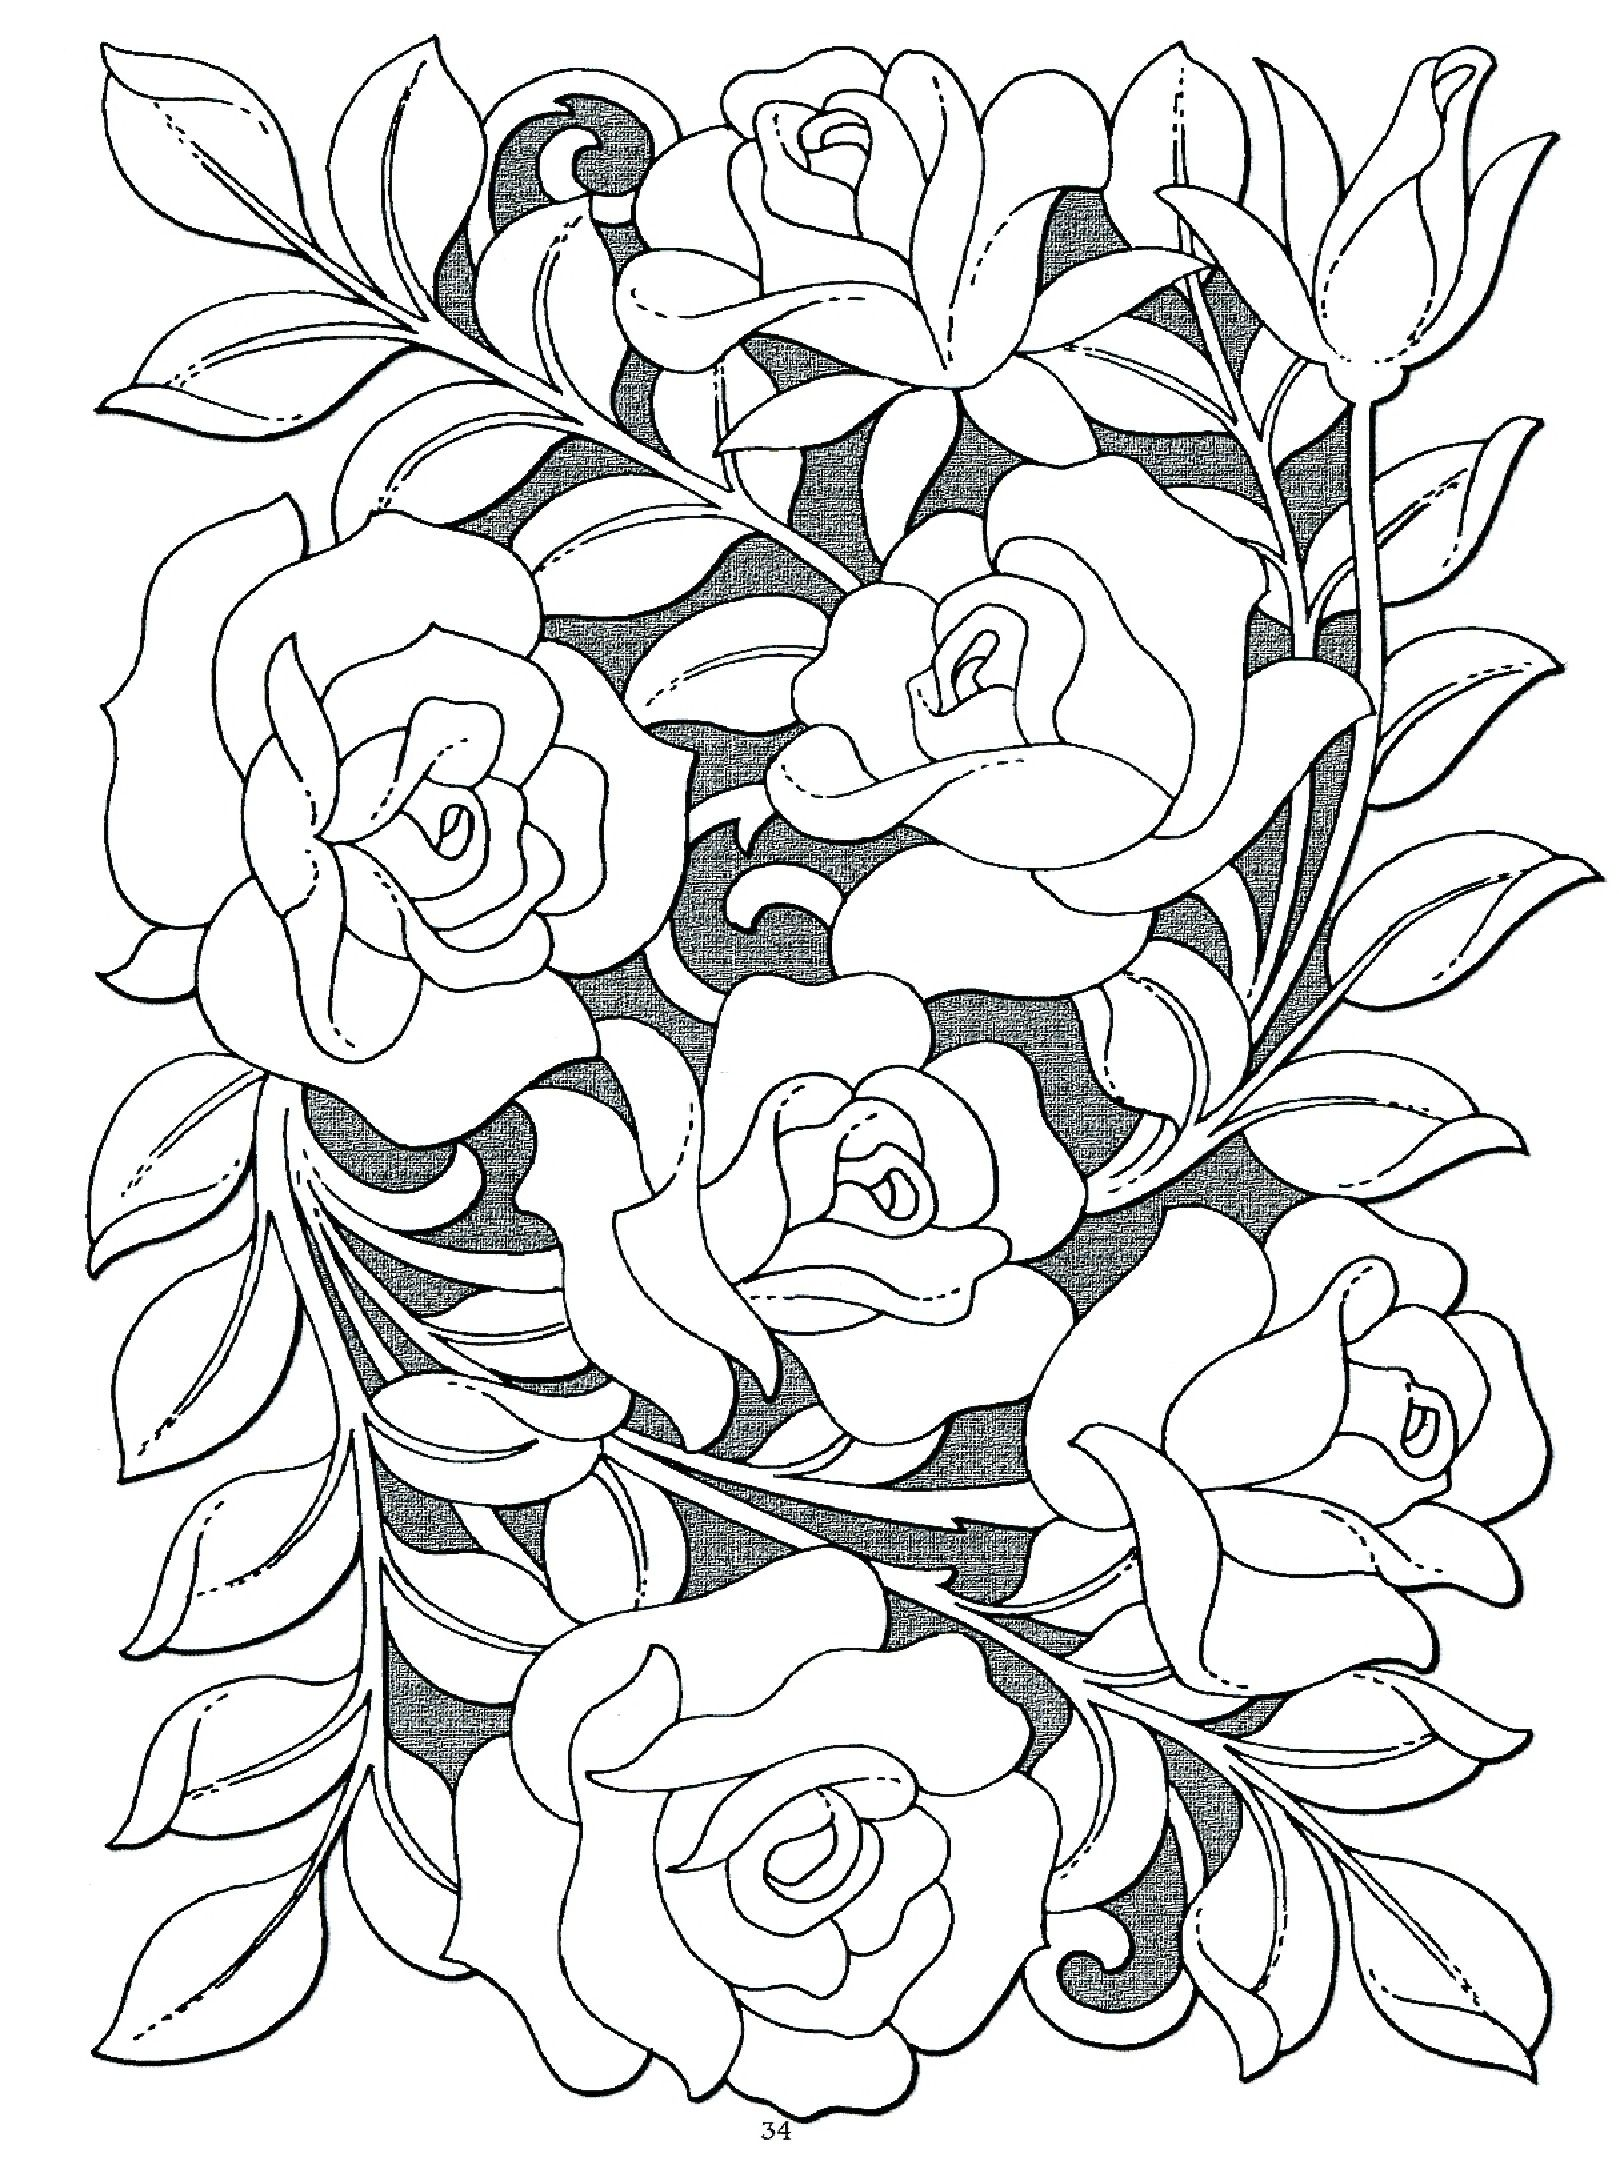 Roses Coloring Pages For Adults That are Impertinent ...